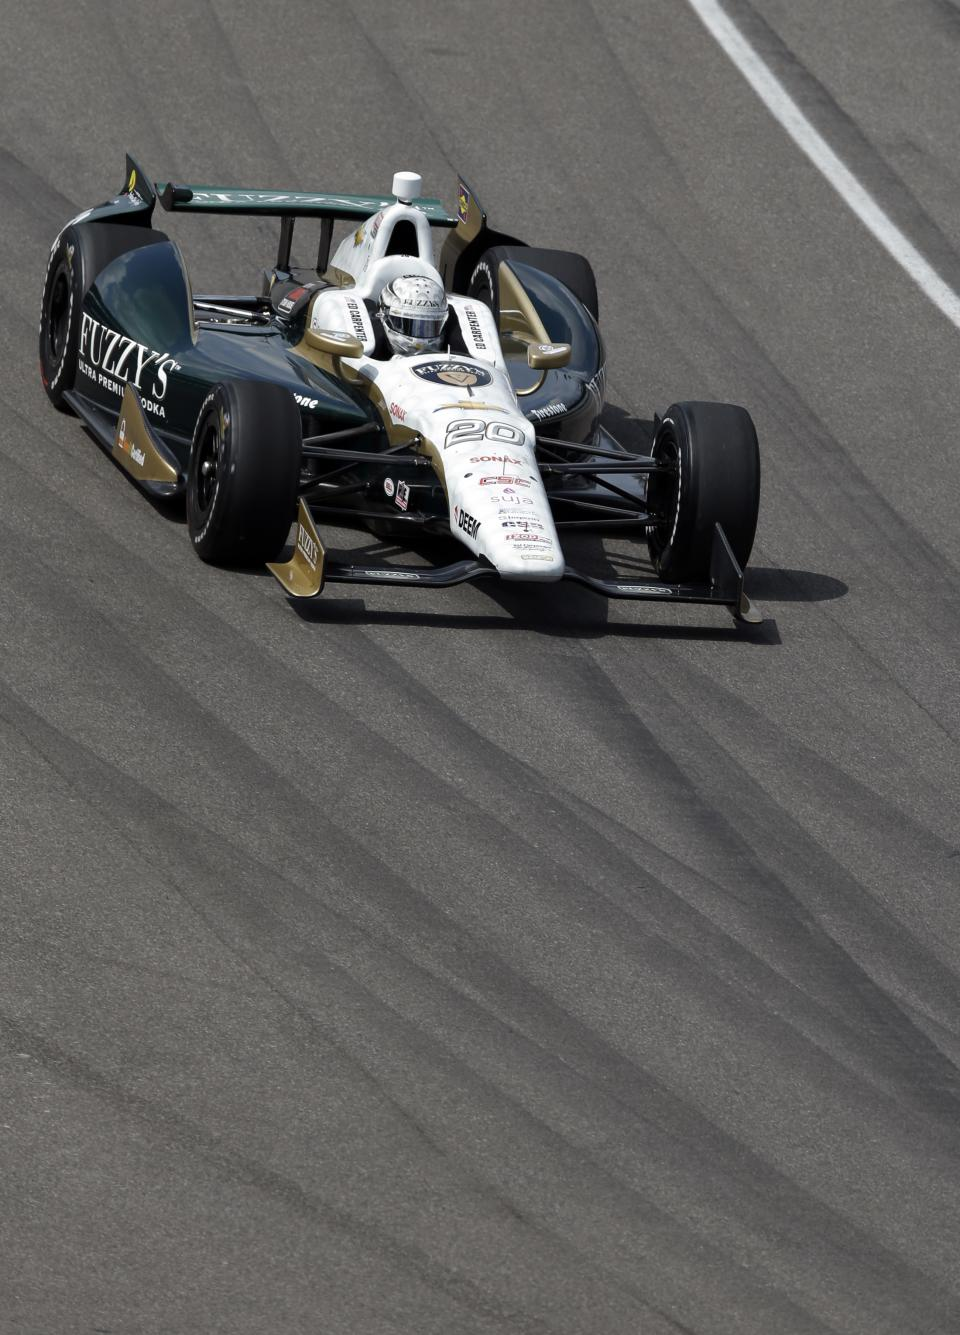 Ed Carpenter heads into the first turn during a practice session on the second day of qualifications for the Indianapolis 500 auto race at the Indianapolis Motor Speedway in Indianapolis Sunday, May 19, 2013. (AP Photo/Darron Cummings)